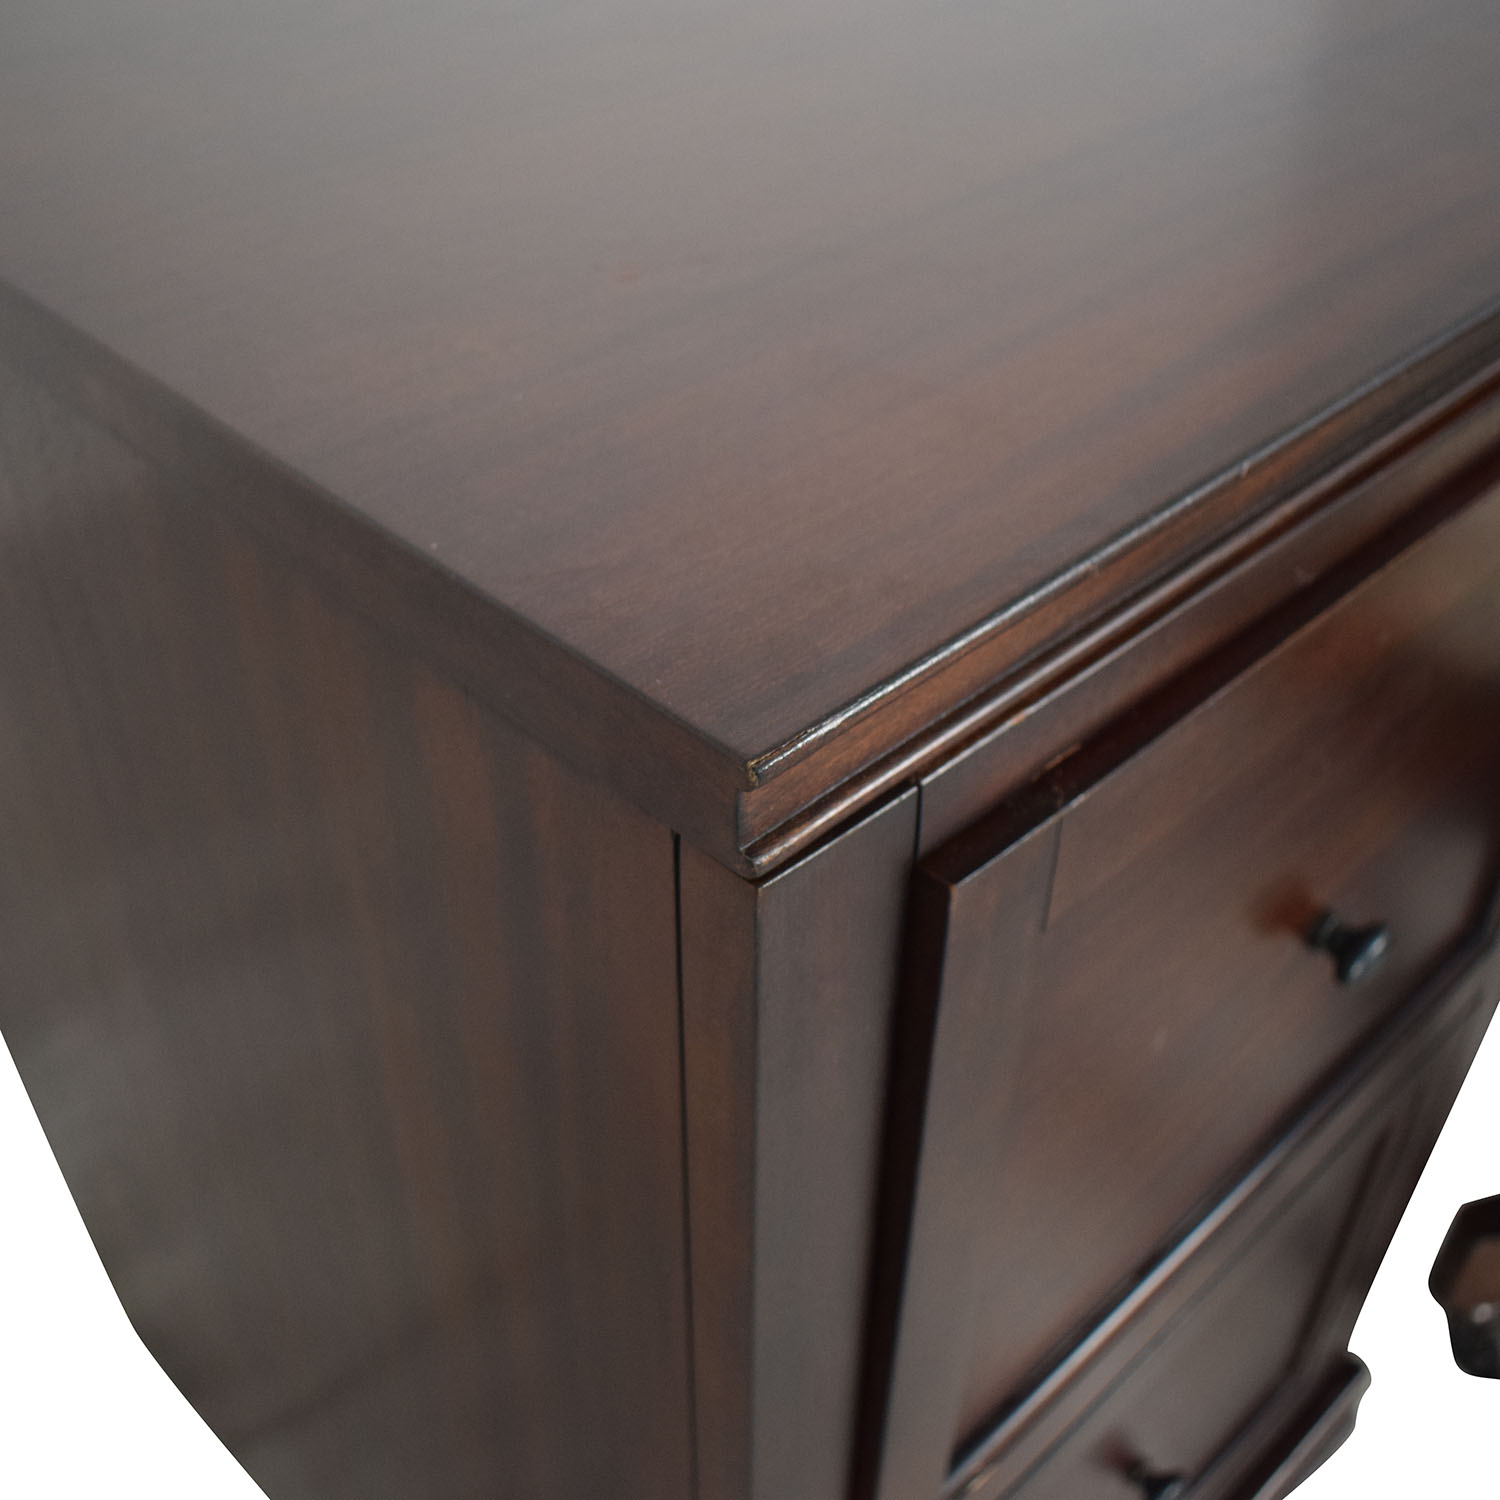 shop Pottery Barn Four-Drawer Desk and Chair on Castors Pottery Barn Home Office Desks